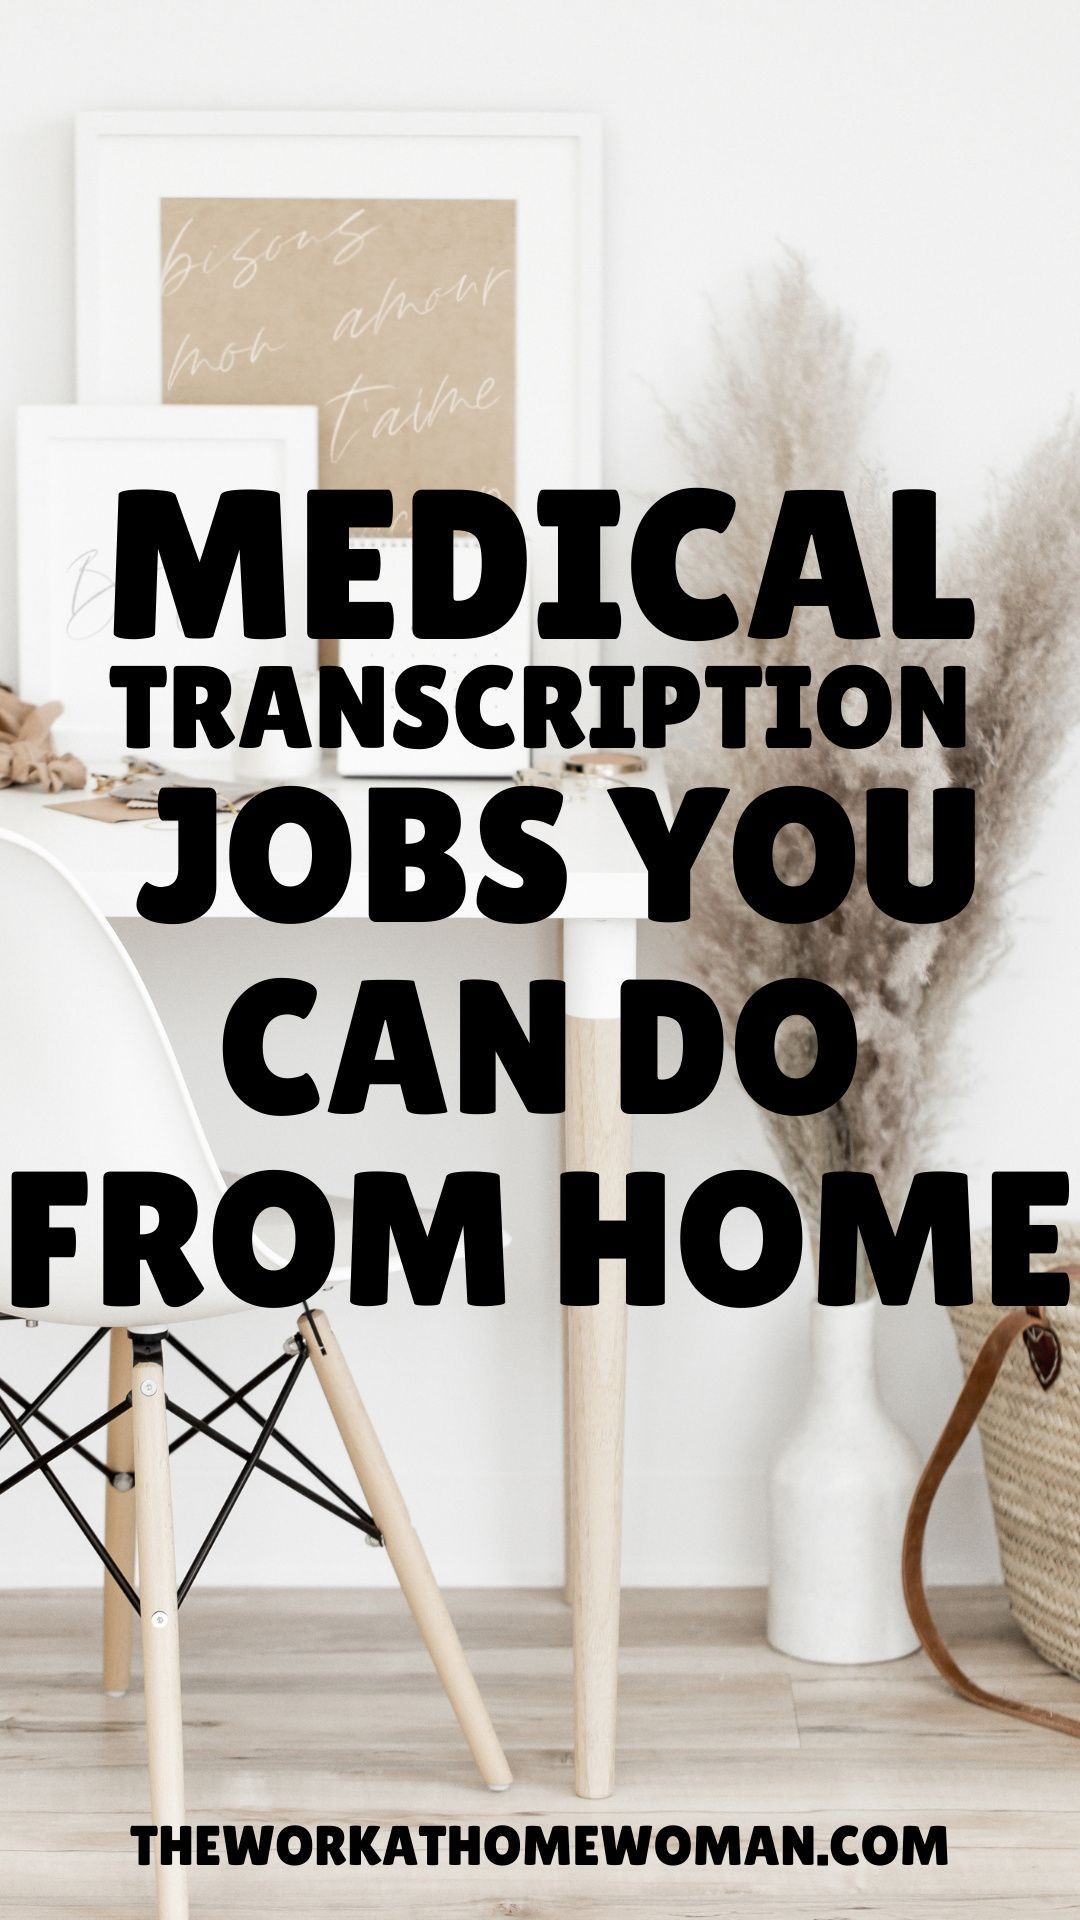 How To Work From Home As A Medical Transcriptionist In 2020 Medical Transcription Medical Transcription Jobs Medical Transcriptionist